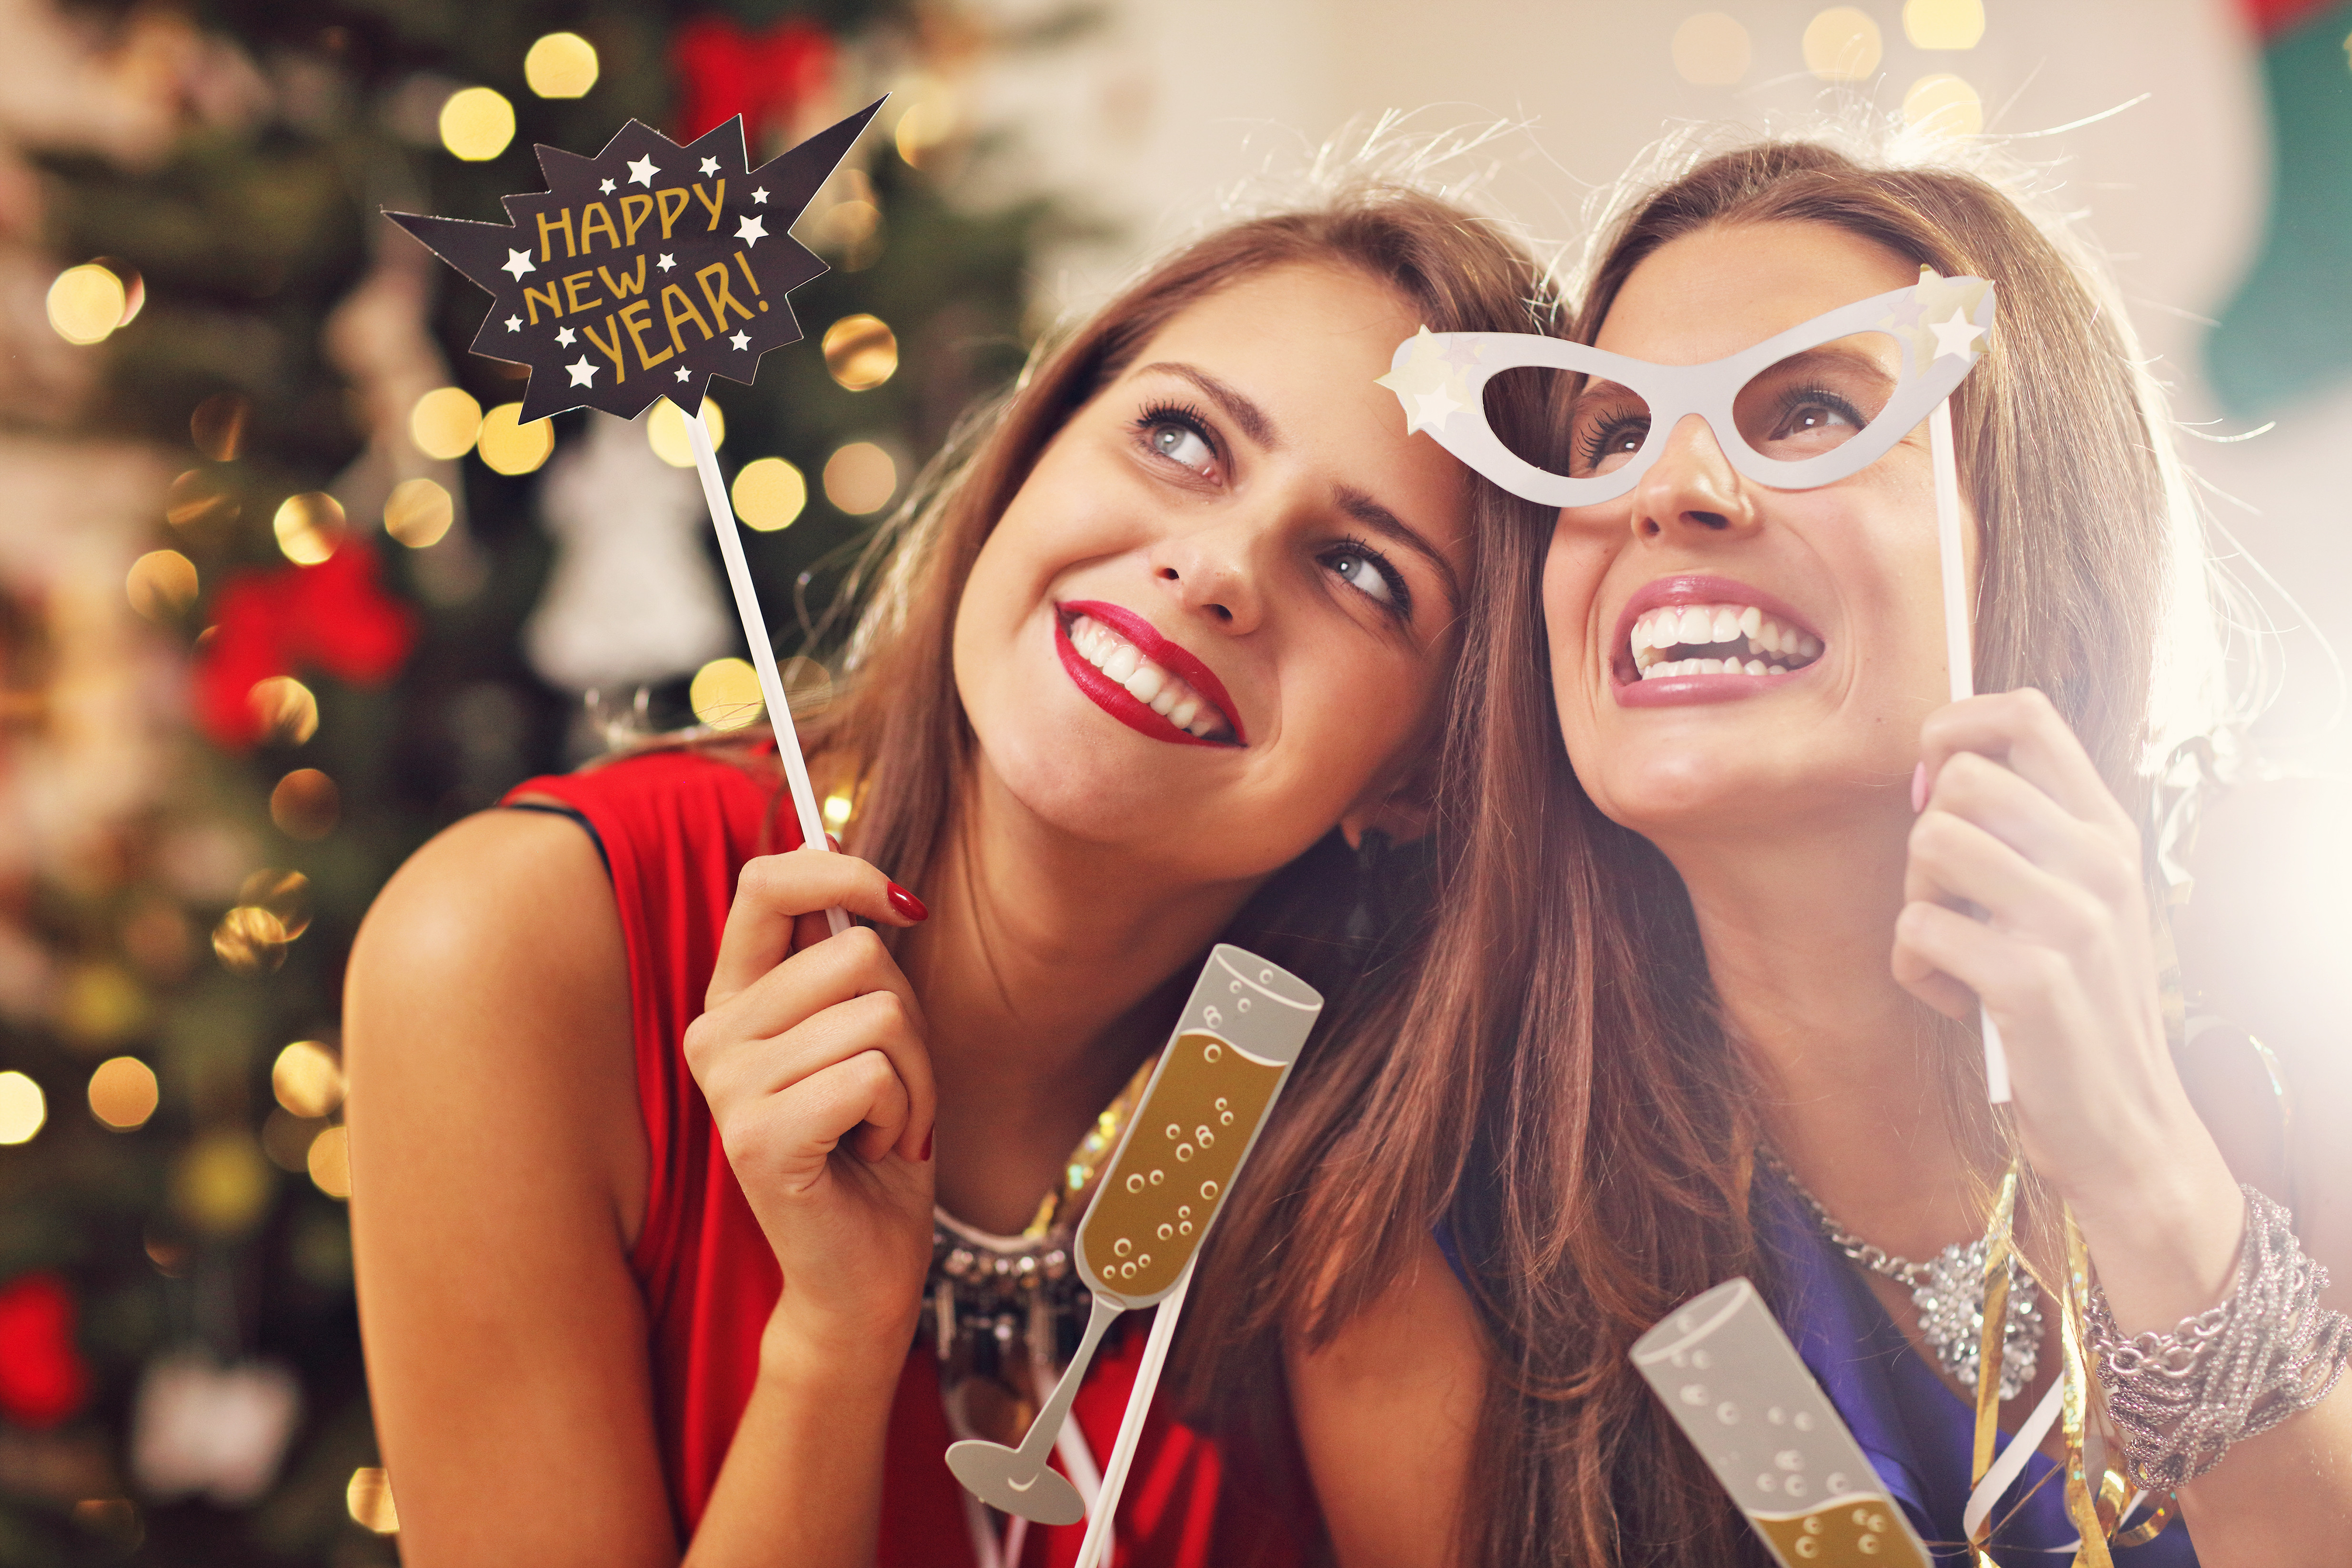 Get the party stared for less with DIY canapes and decor to cut costs this New Year's Eve